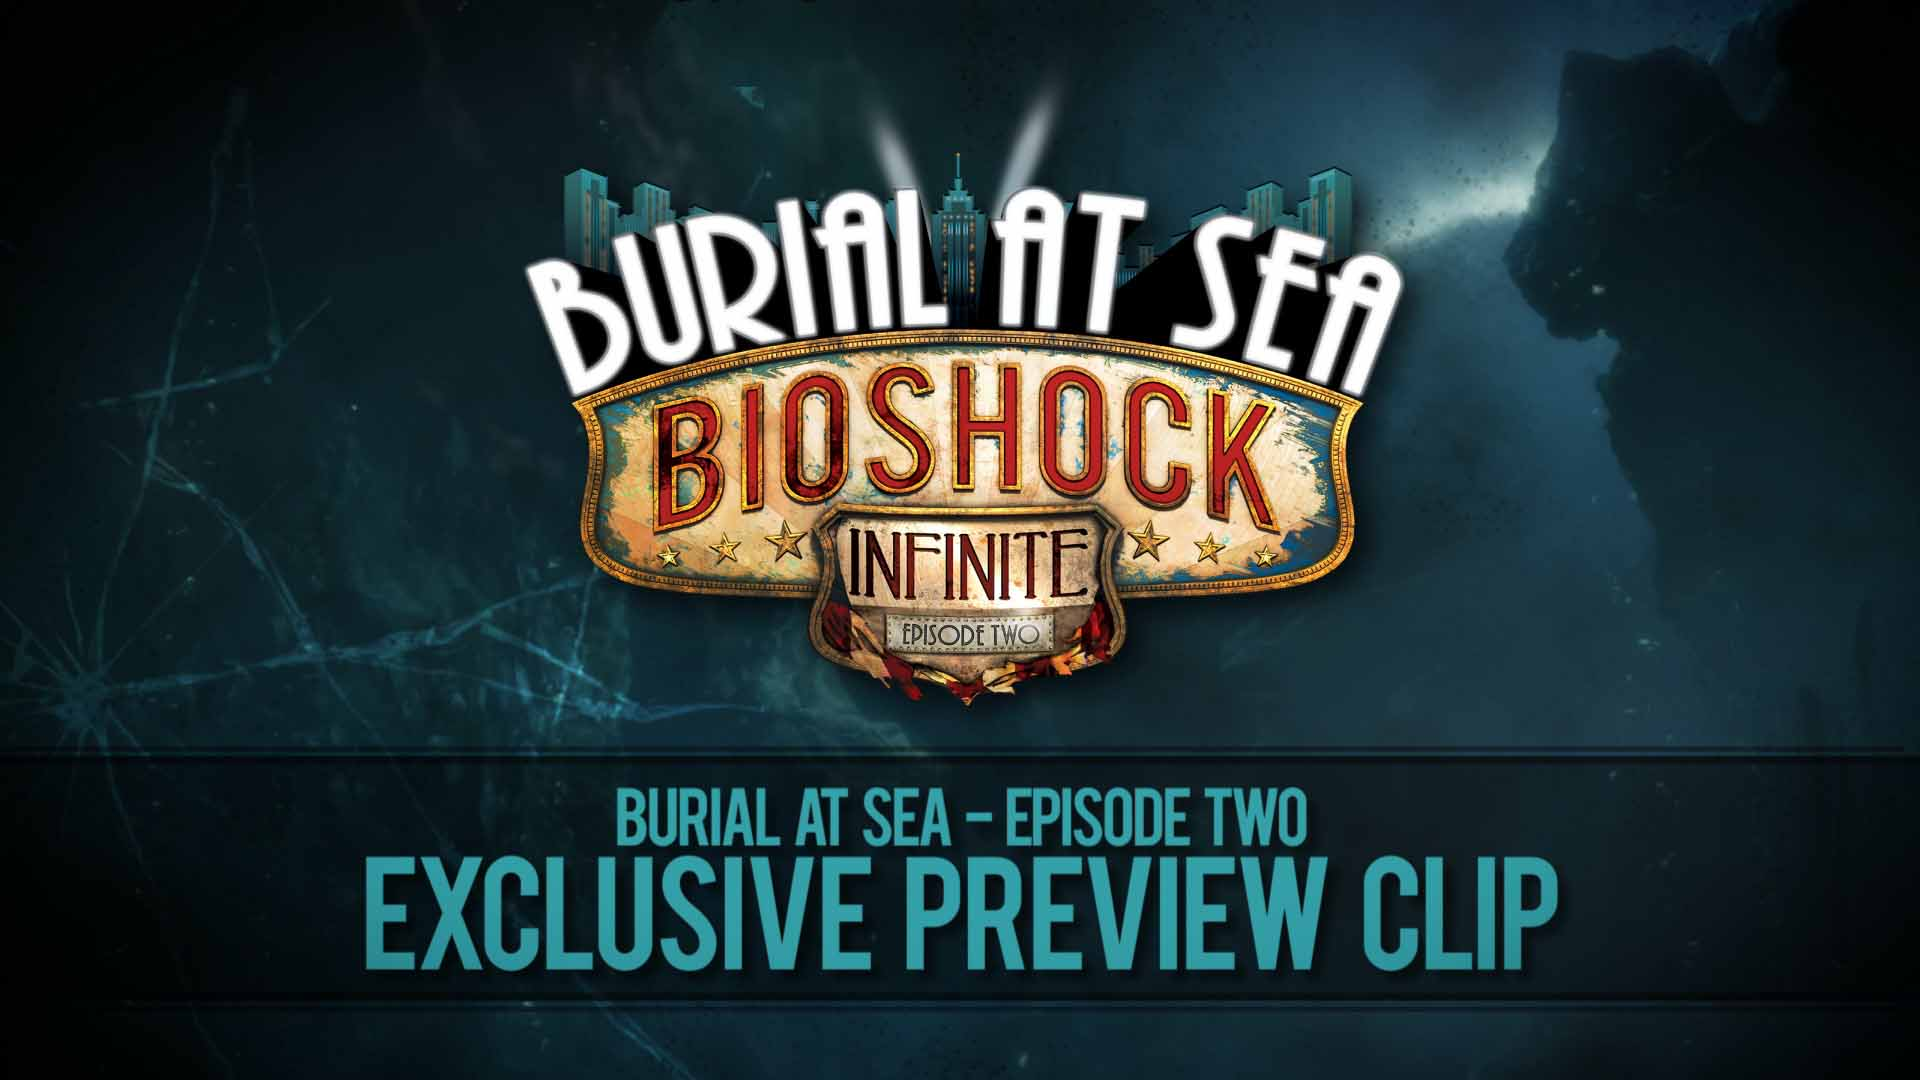 Bioshock Infinite -Burial At Sea Episode 2